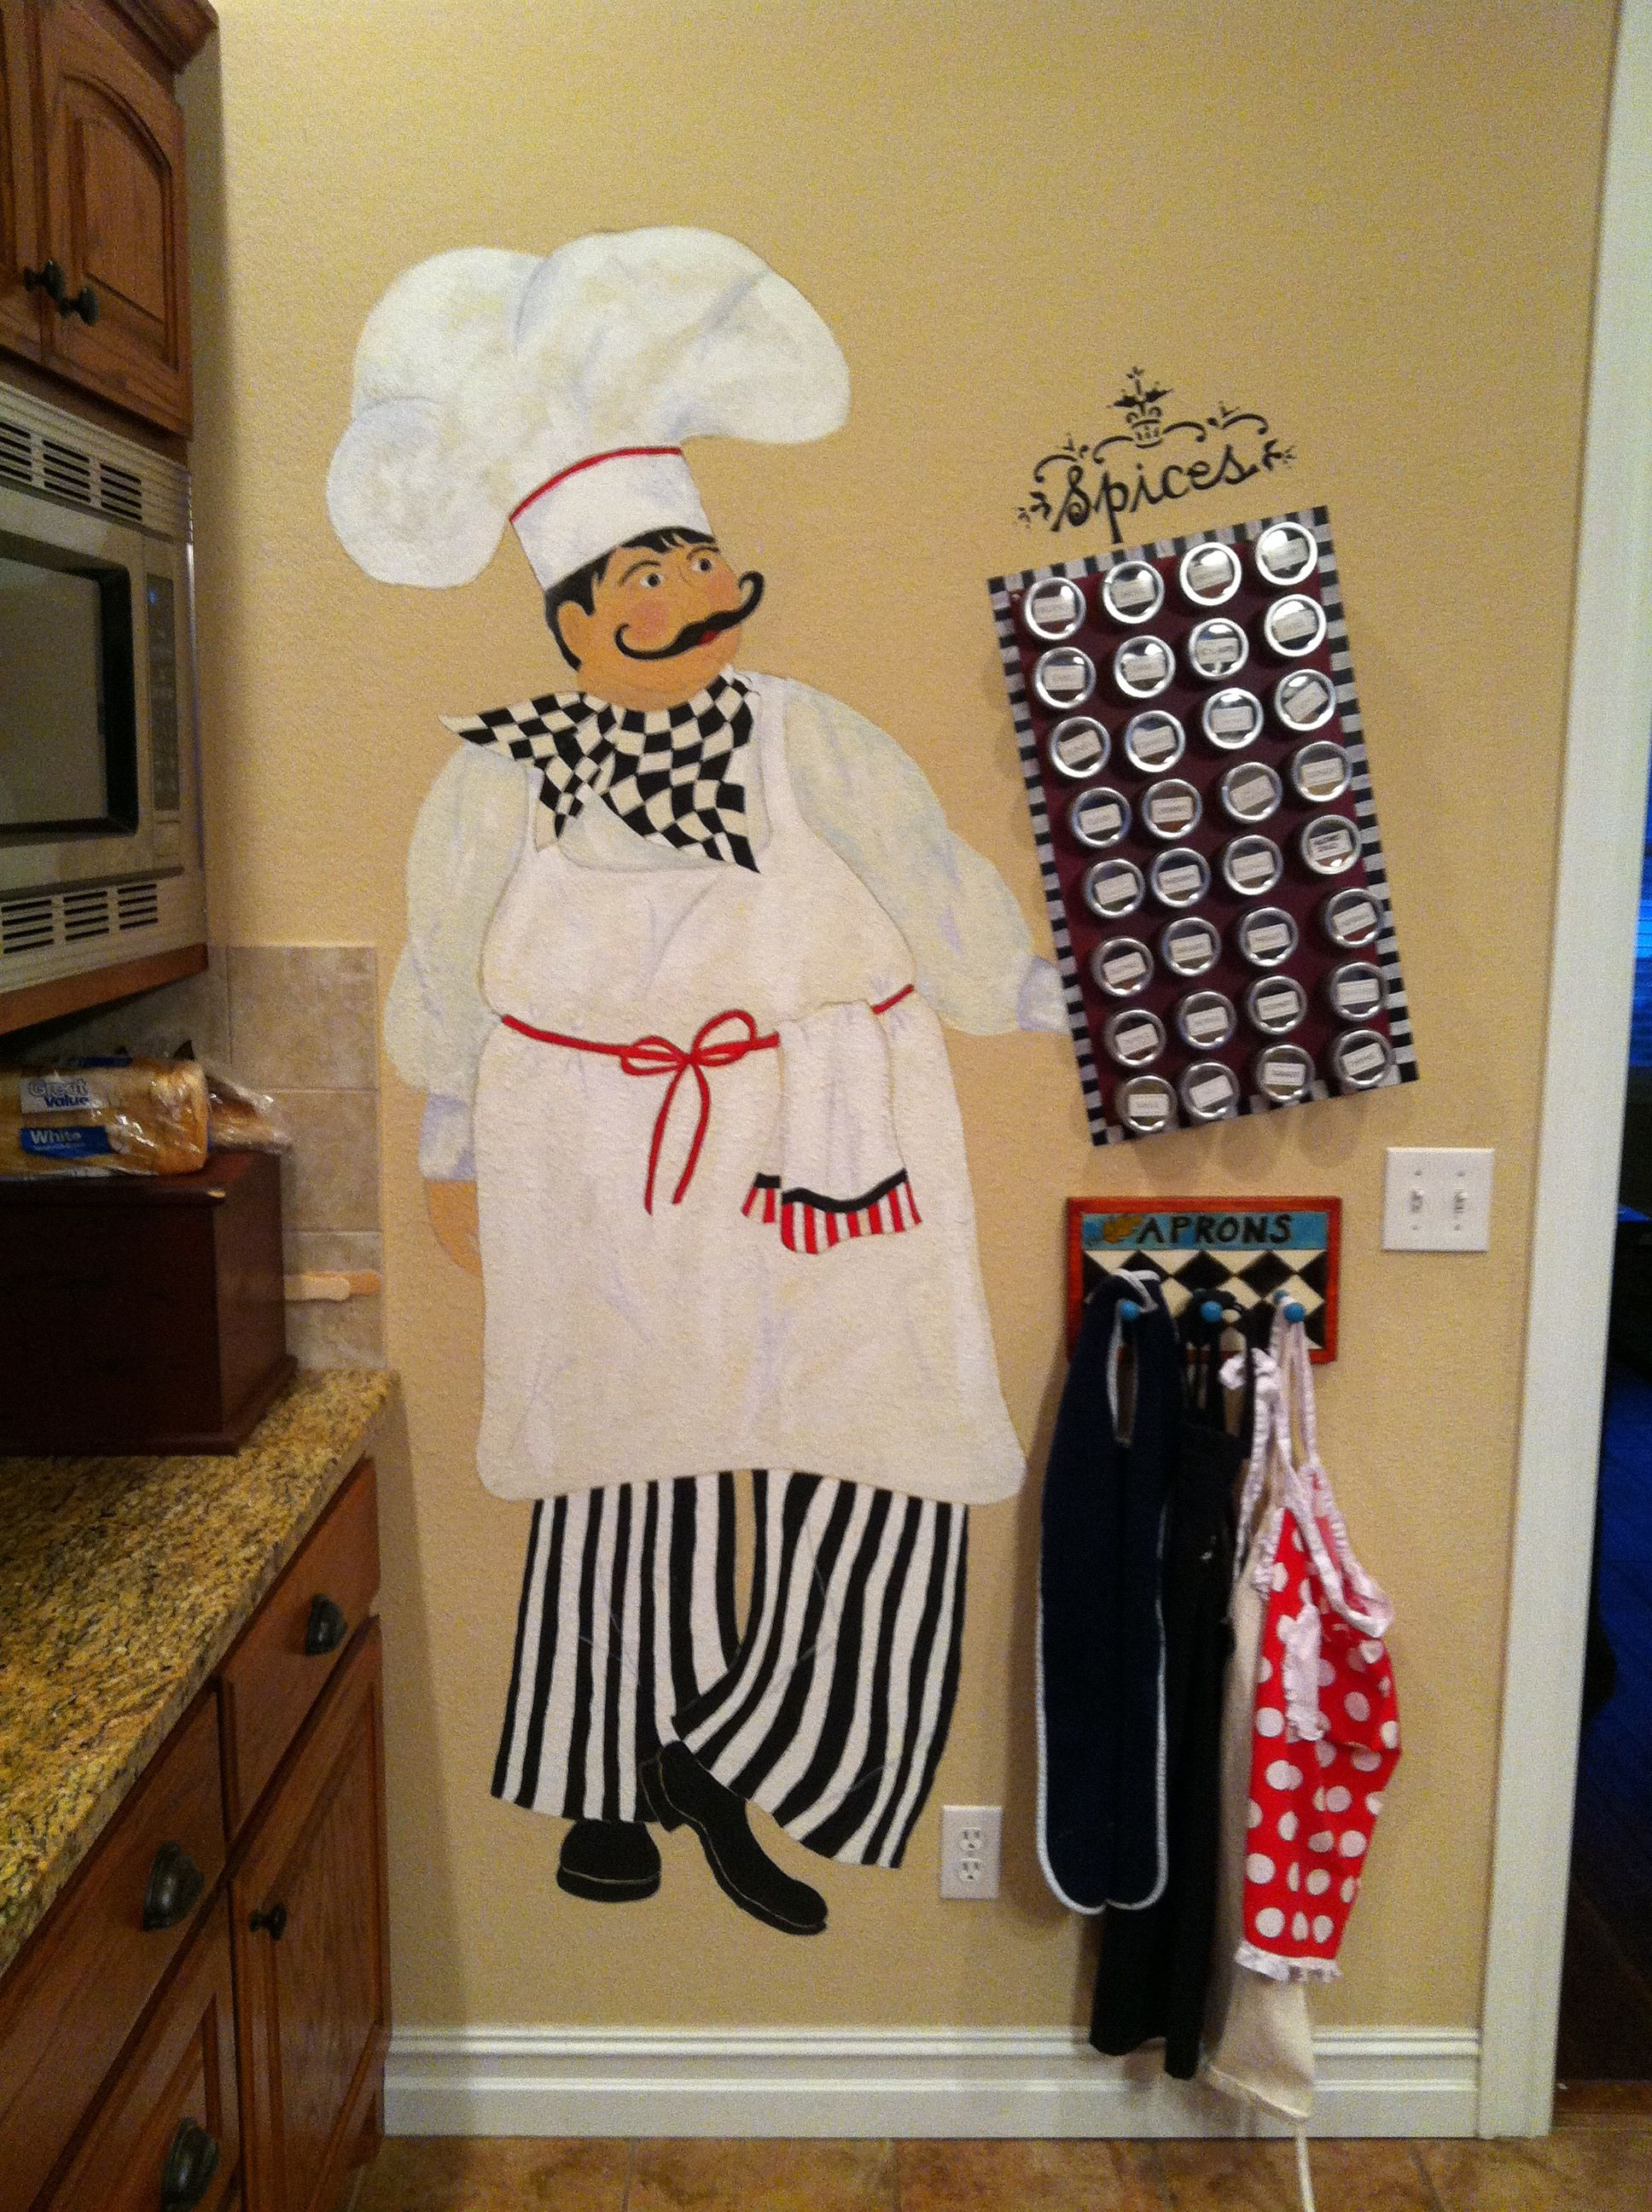 Pin By Anita Bural On For The Home Chef Kitchen Decor Bistro Kitchen Decor Owl Kitchen Decor